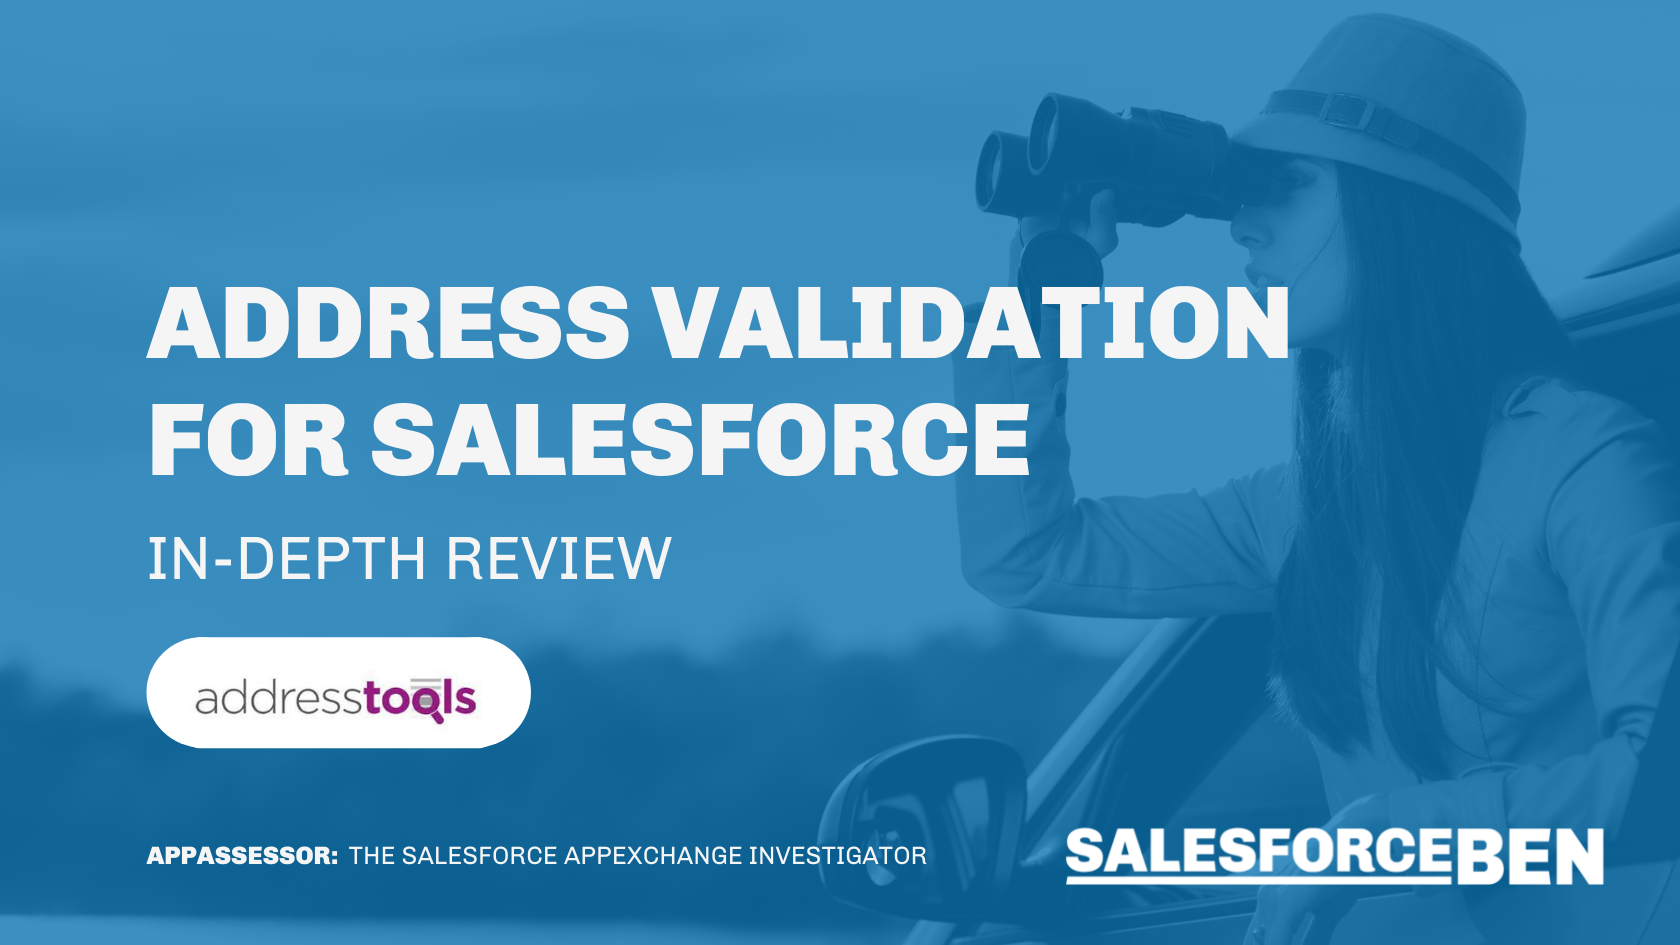 Address Validation for Salesforce [In-Depth Review]